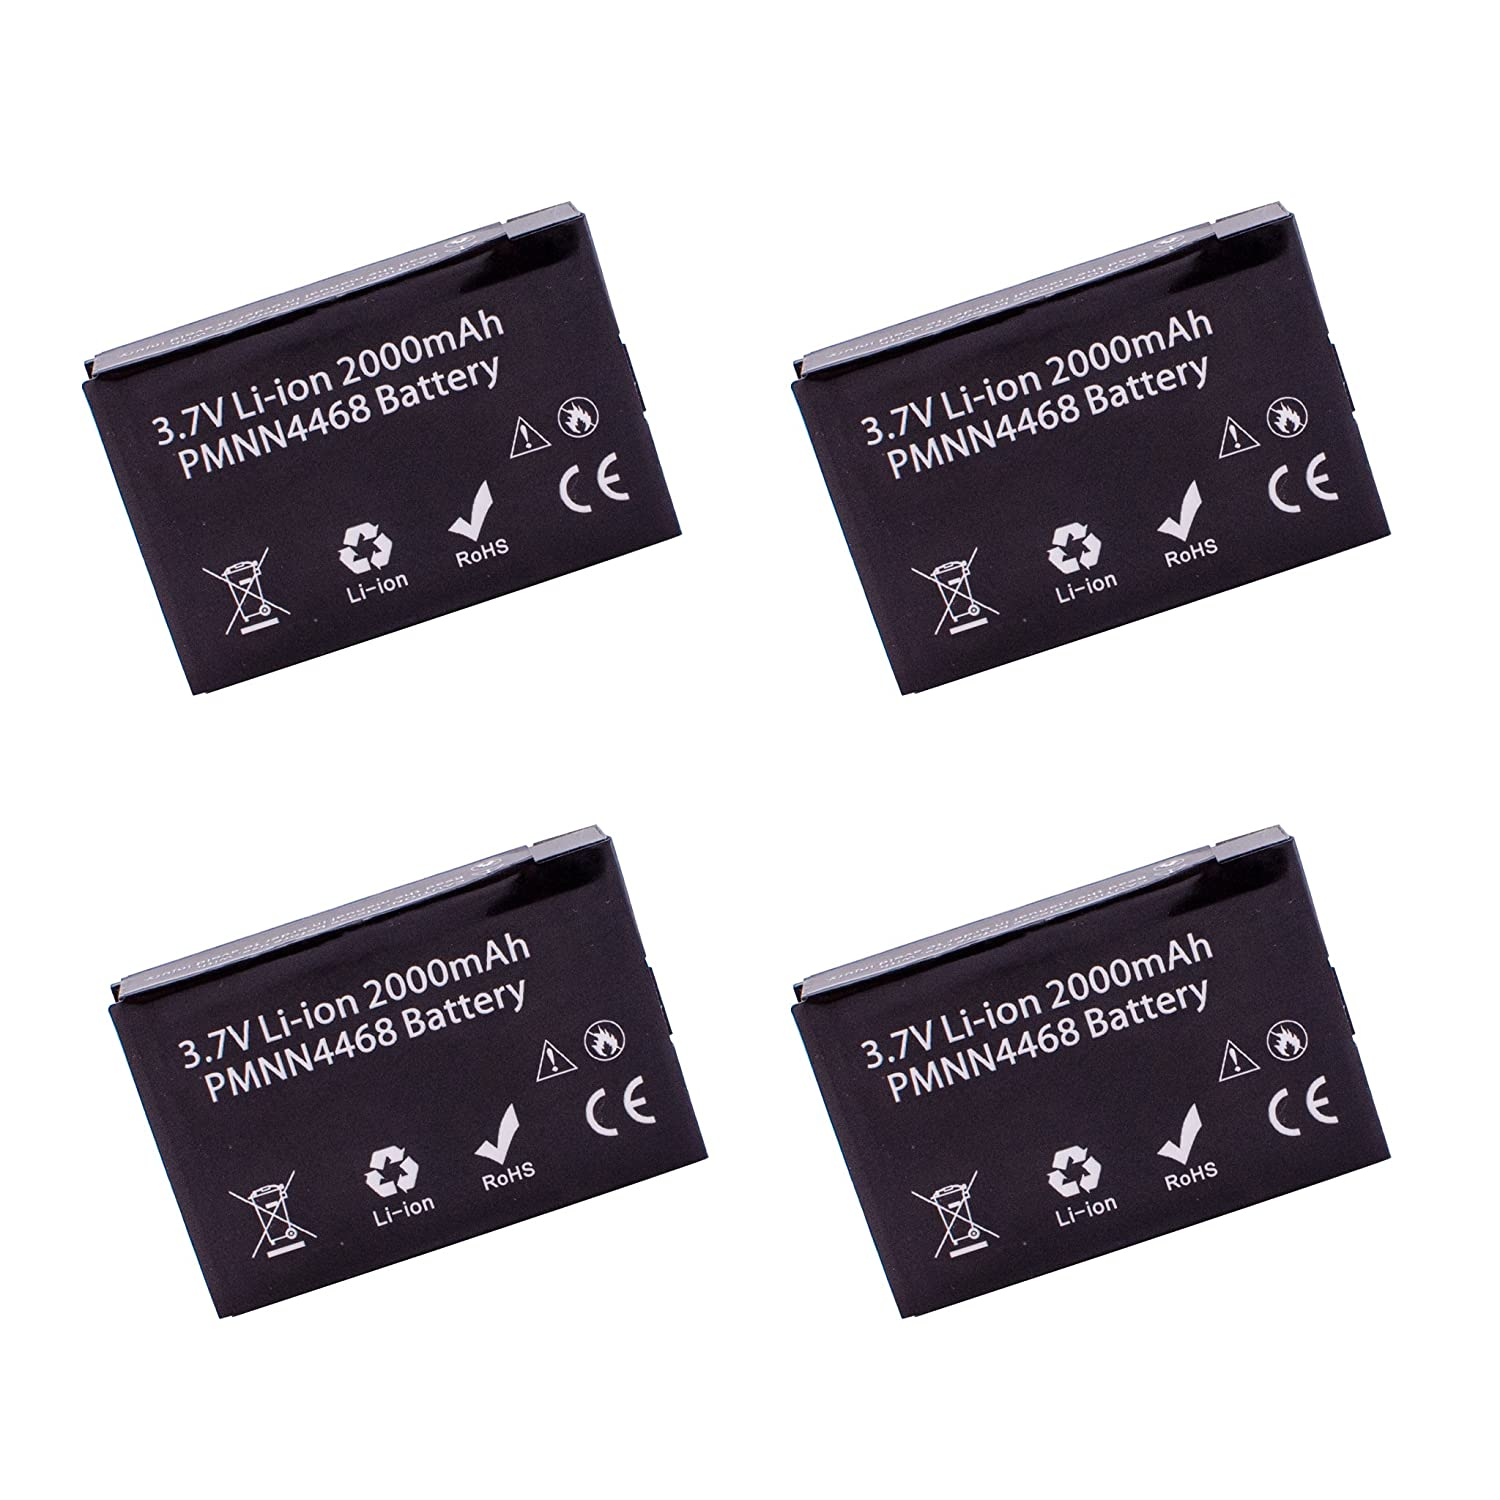 4 Pack ArrowMax AMCL4468-2000-D PMNN4468A PMNN4468 Li-ion Battery for Motorola SL300 (2000 mAh) 81bcjlvrTDL._SL1500_